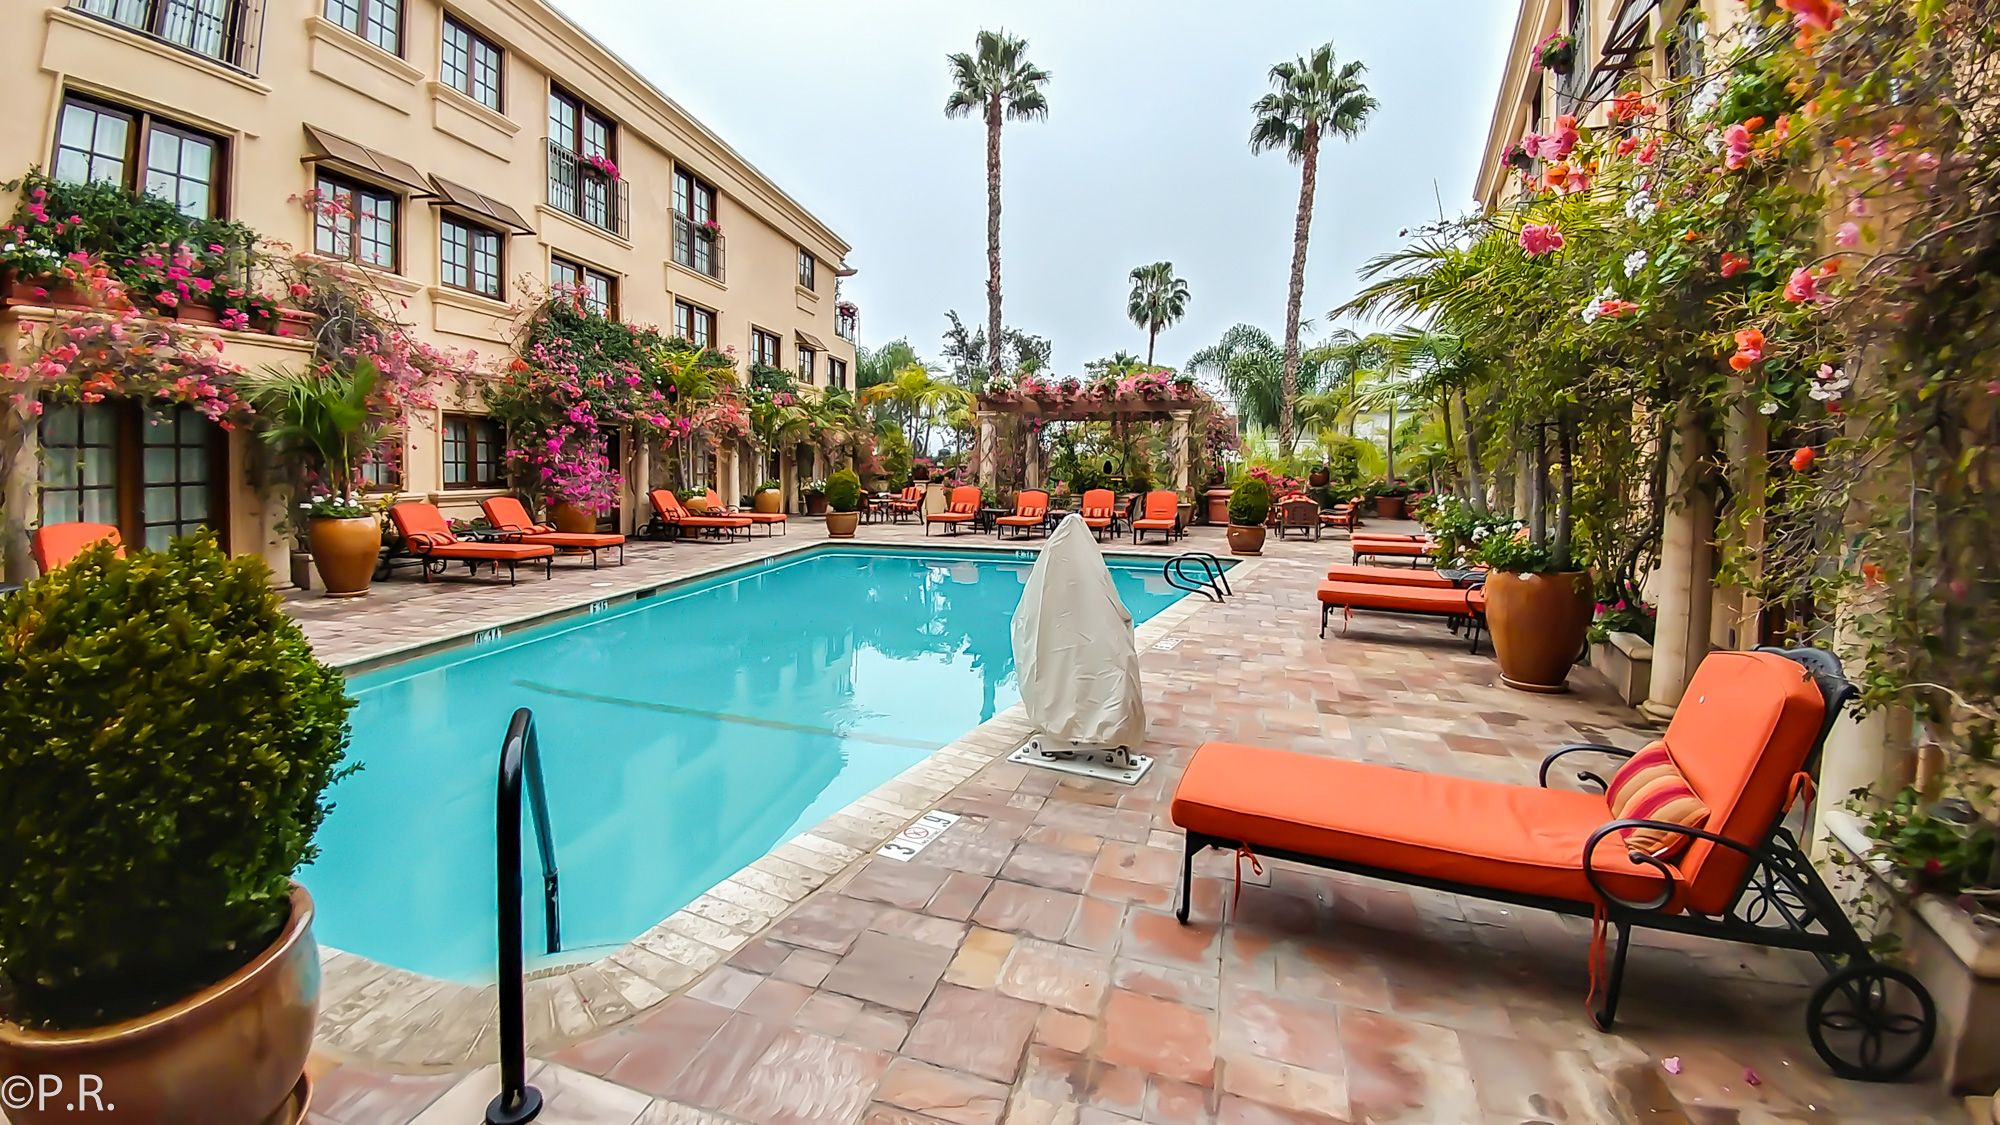 Hotel Review: Best Western Plus Sunset Plaza in Los Angeles